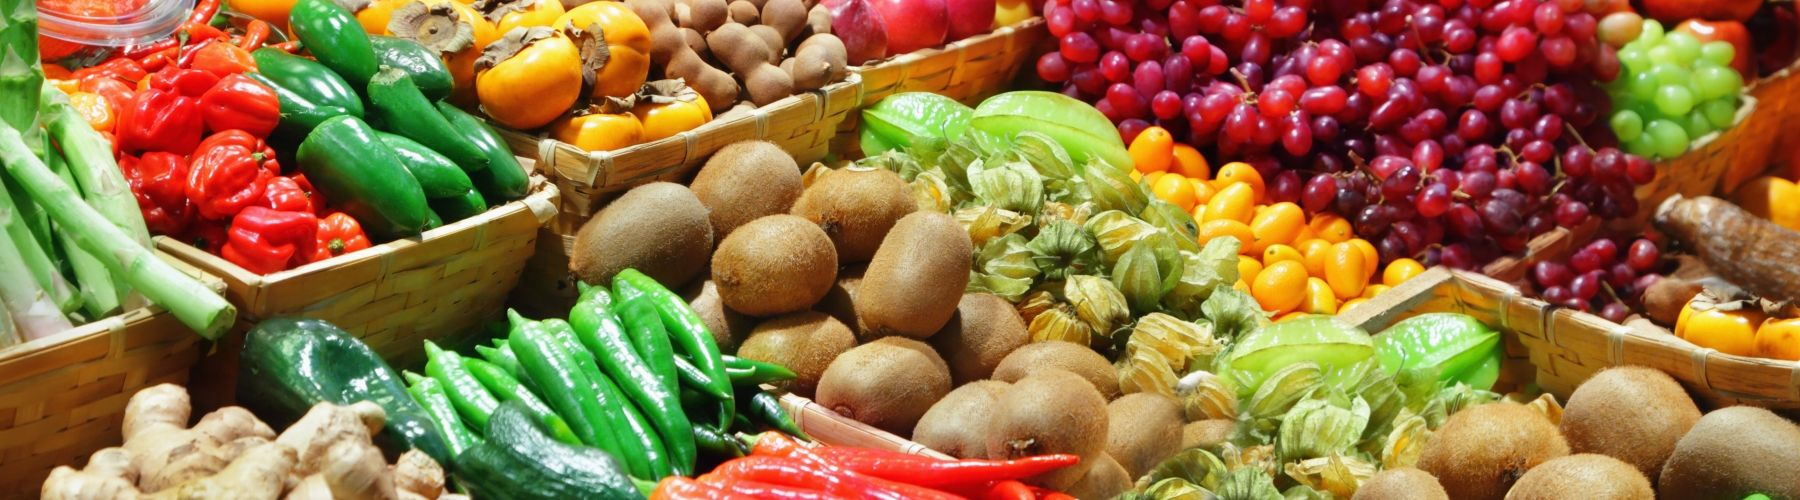 eating more fruit and vegetables can make you happier